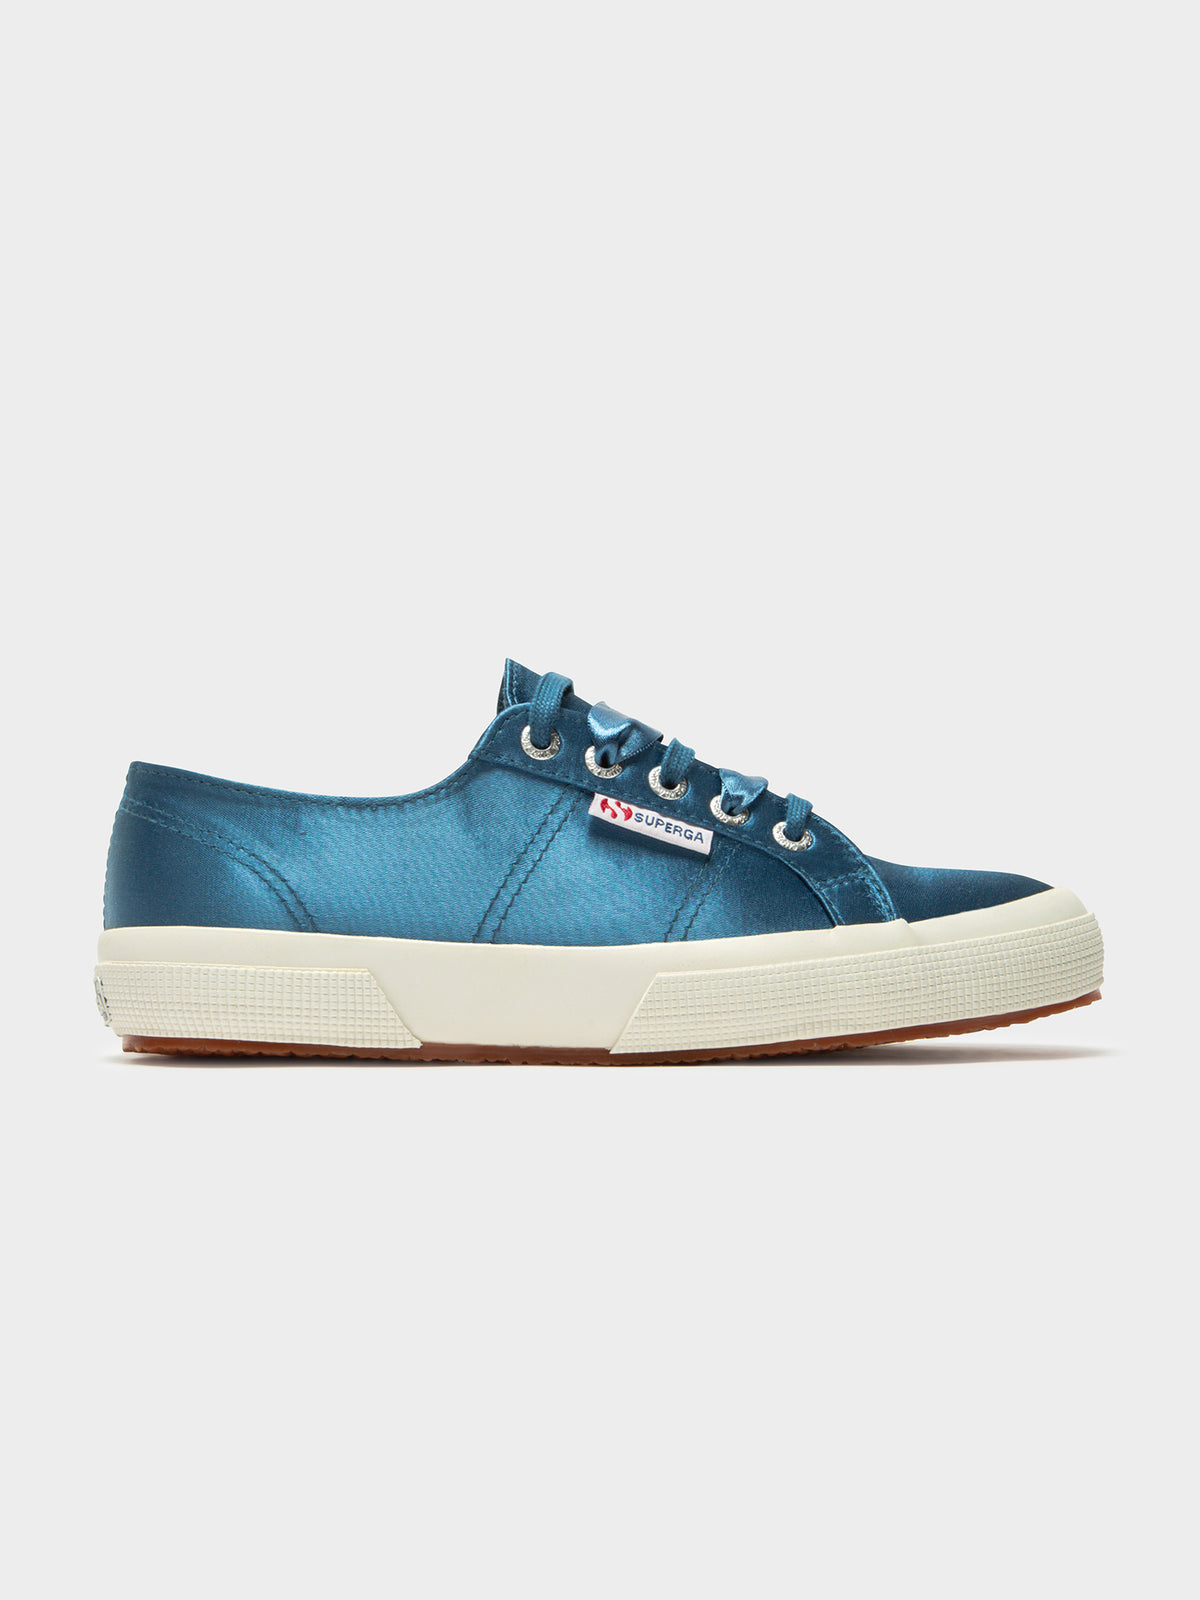 2750 Satin Sneakers in Blue